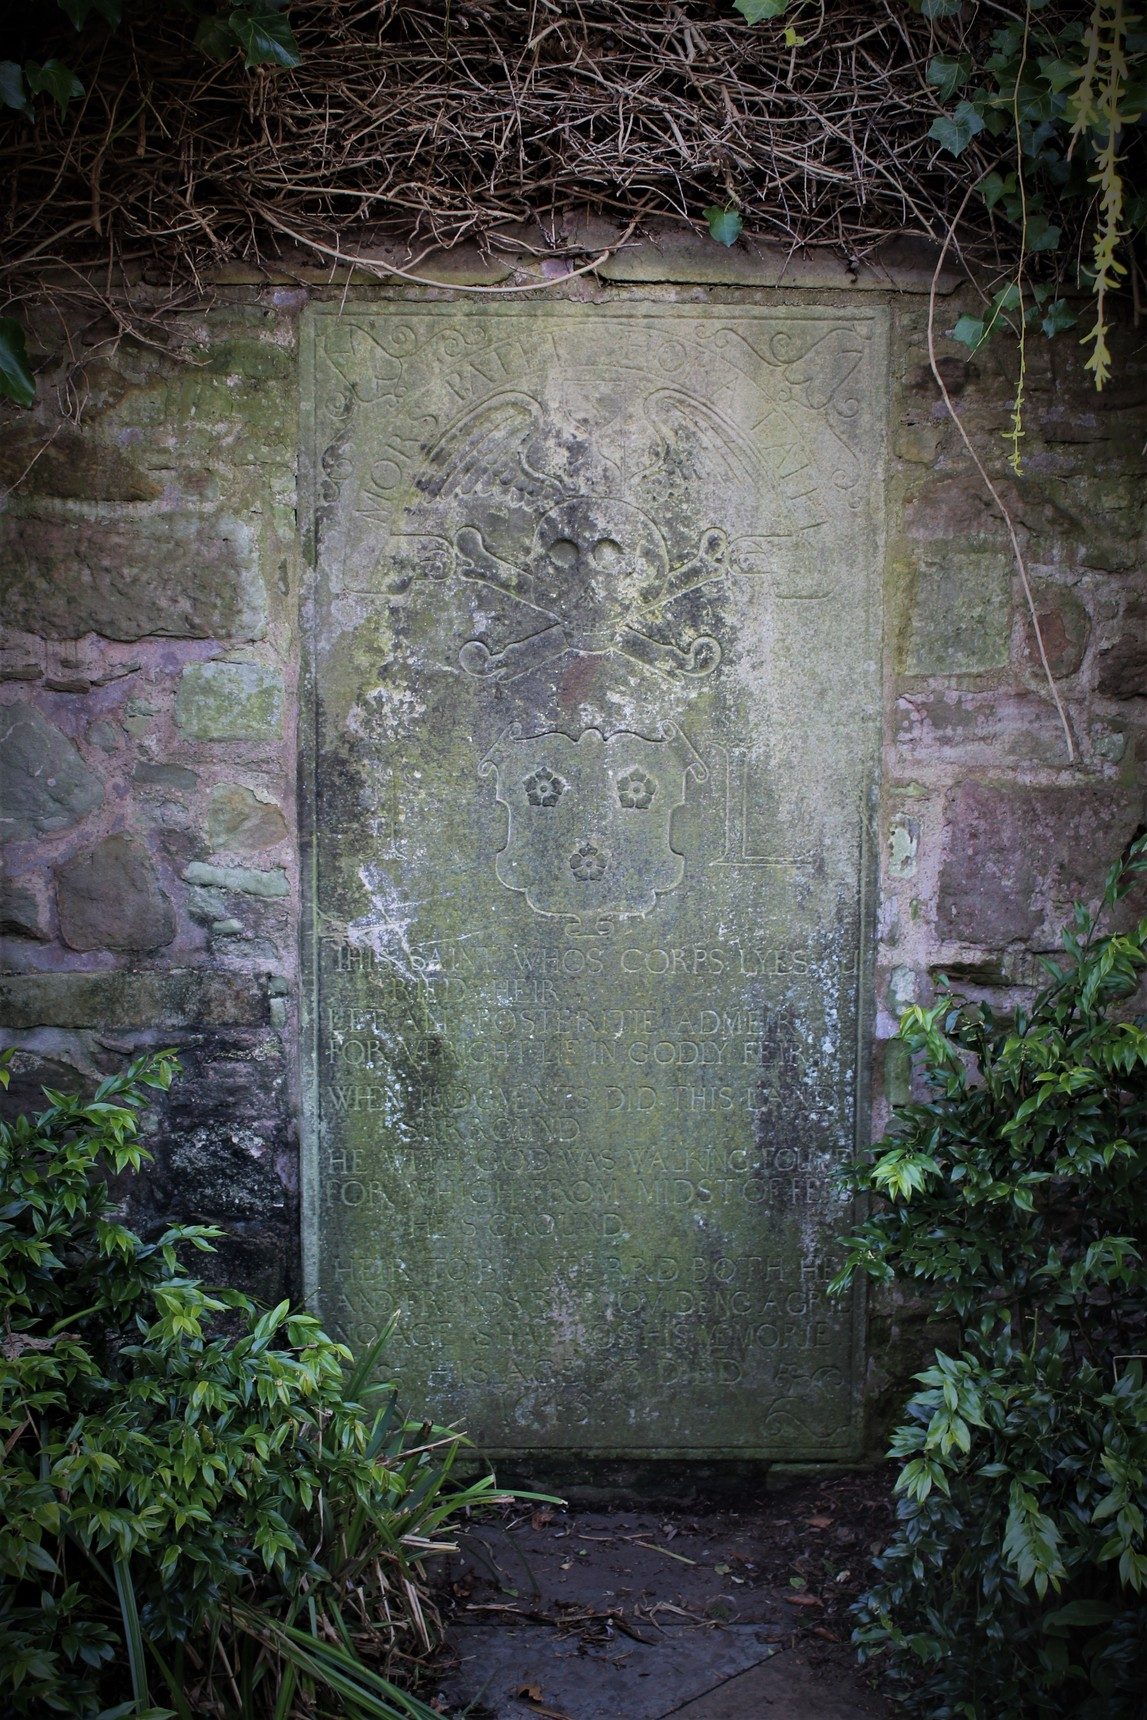 Gravestone of John Livingston